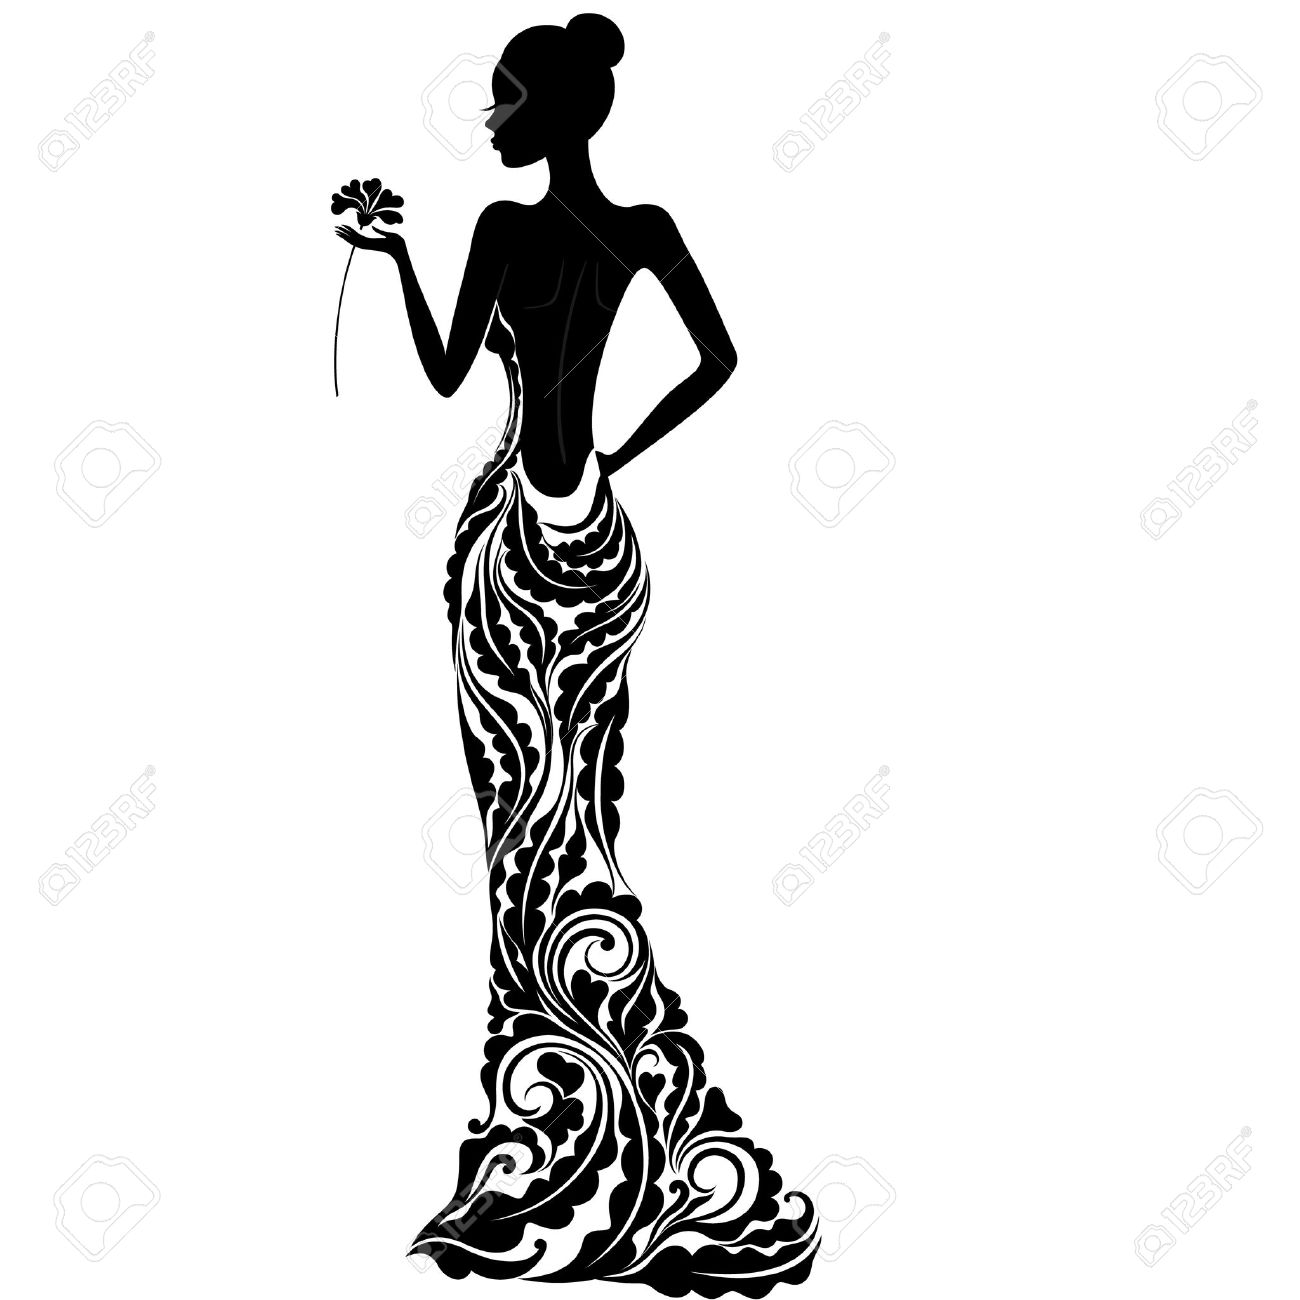 107 best stencils images on pinterest silhouette silhouette